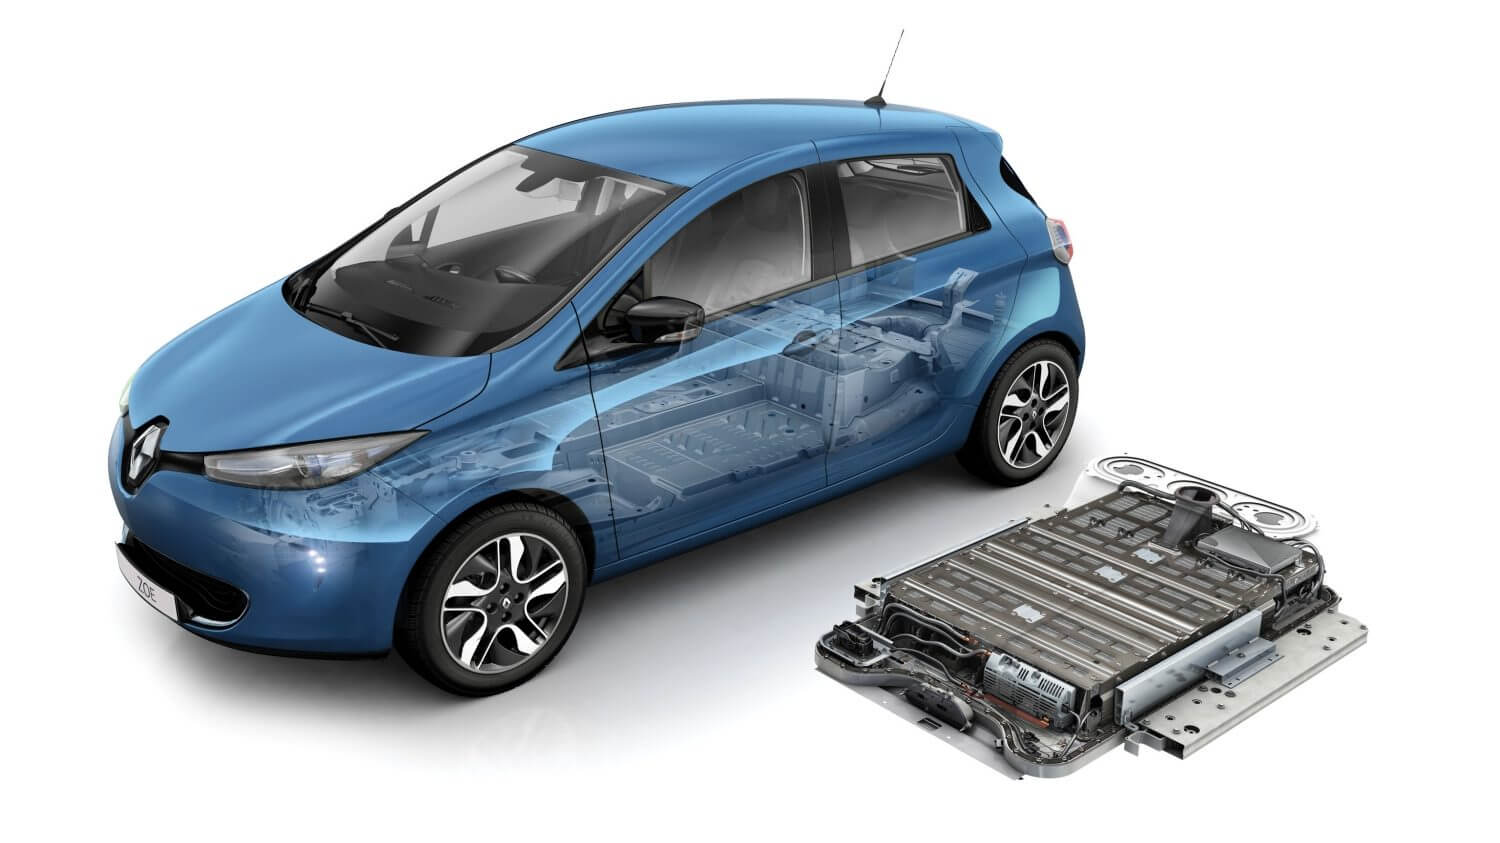 renault-zoe-b10-ph1-lr-charging-001.jpg.ximg.l_full_m.smart